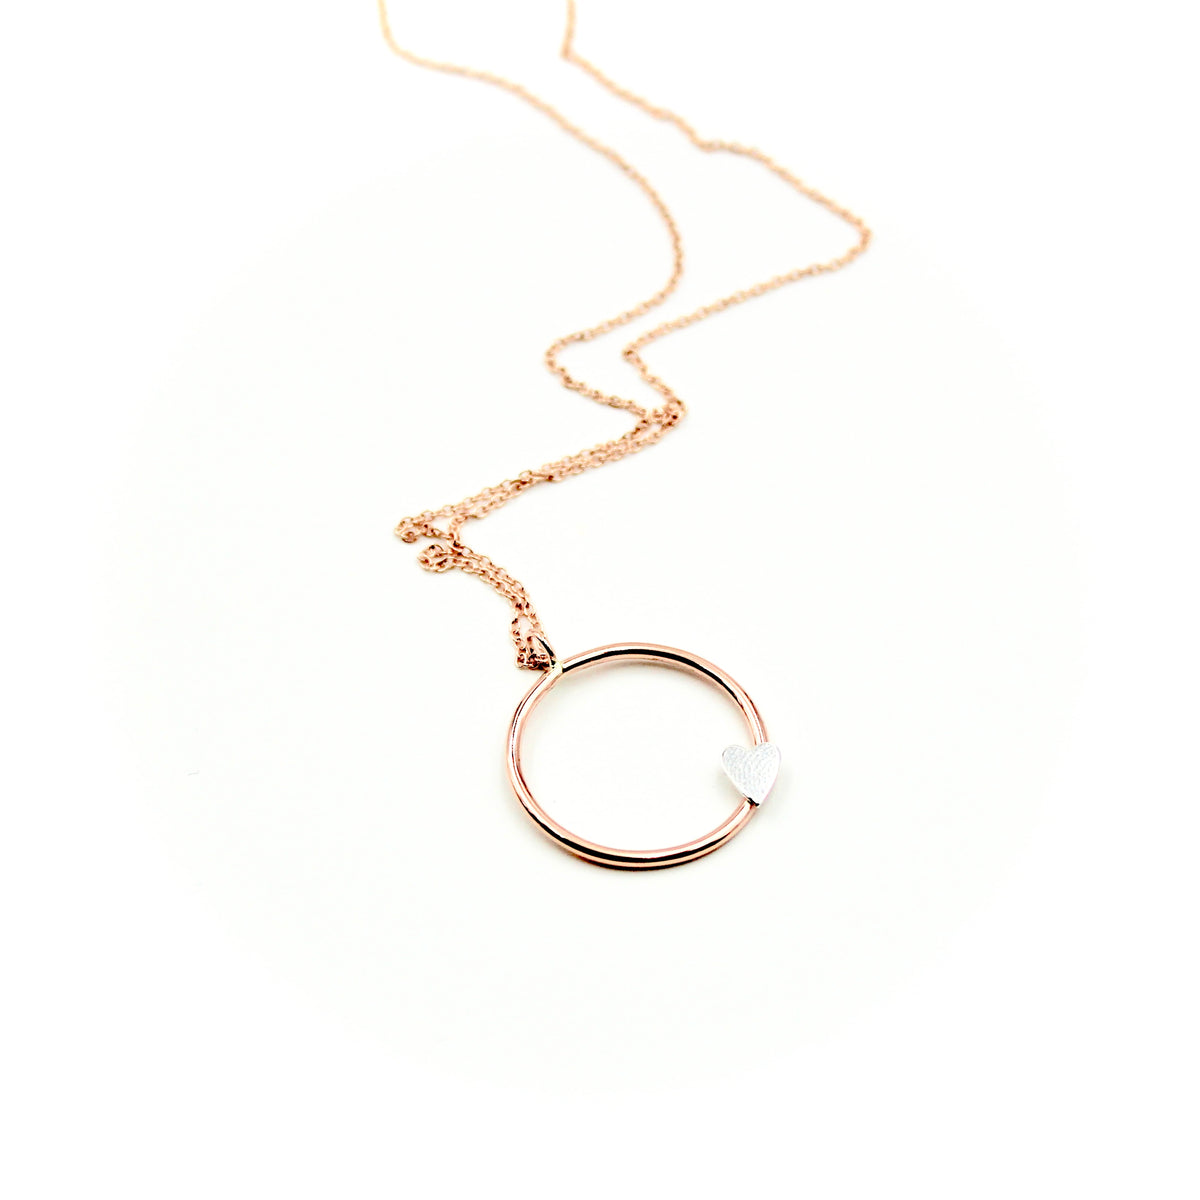 Tilted Heart Rose Gold-Filled Circle Necklace